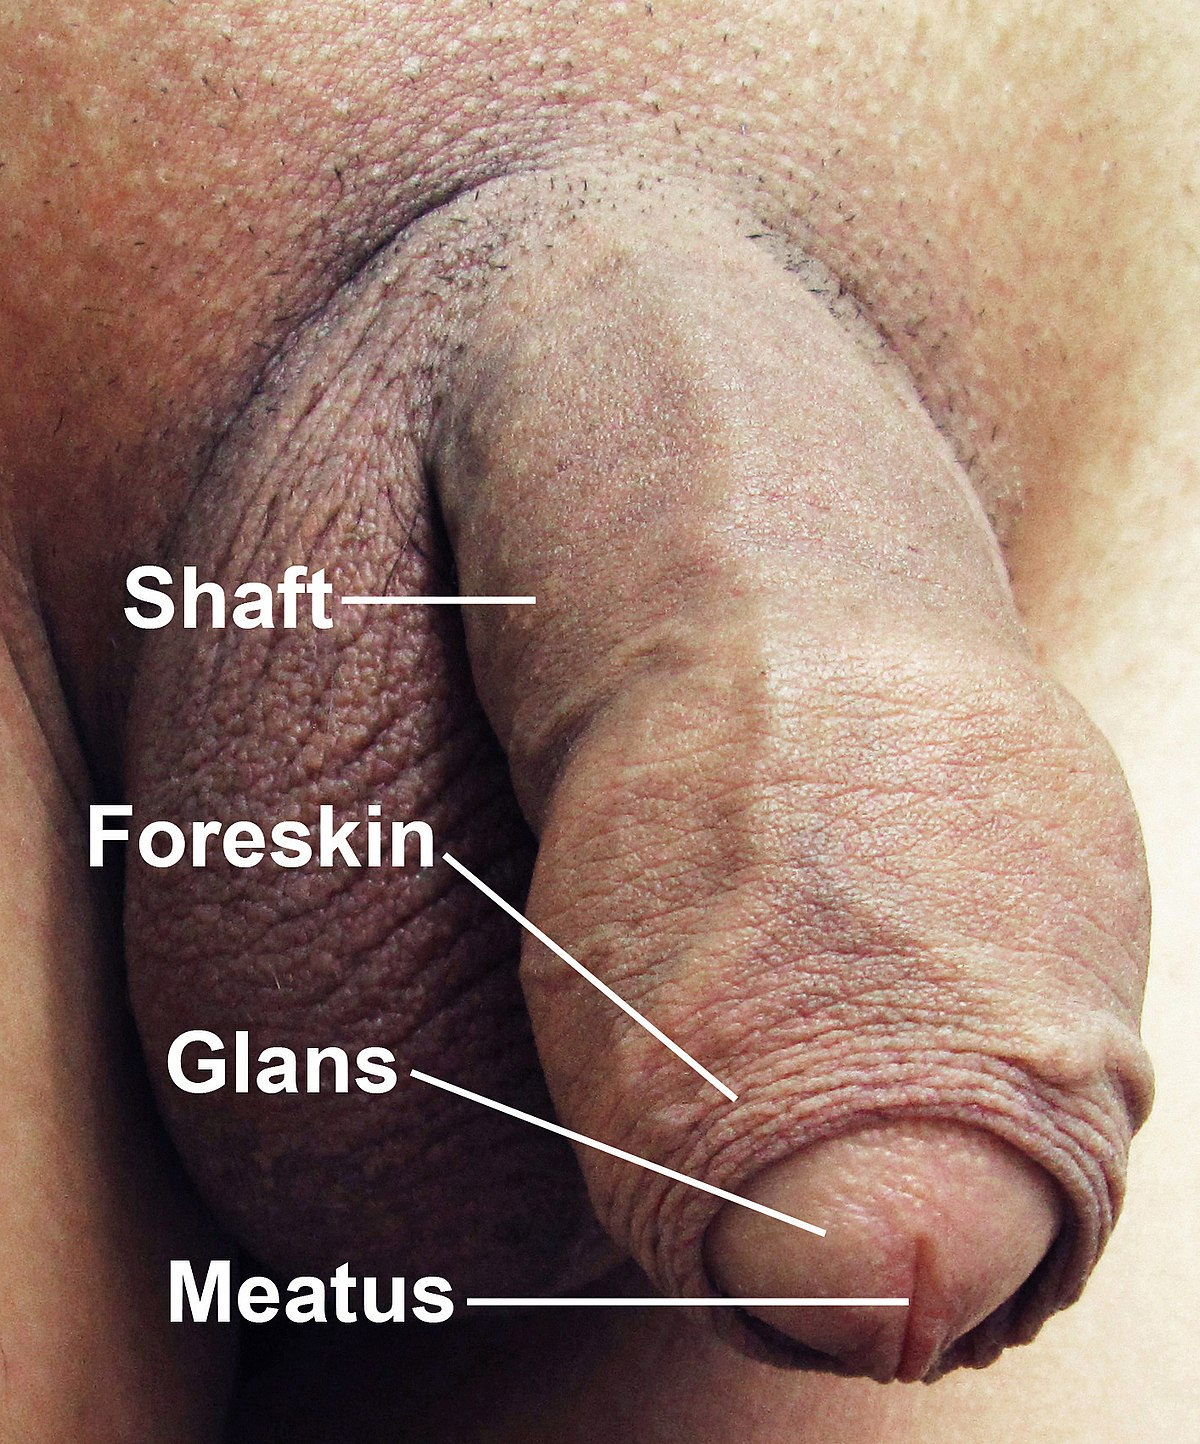 Sensitive areas penis